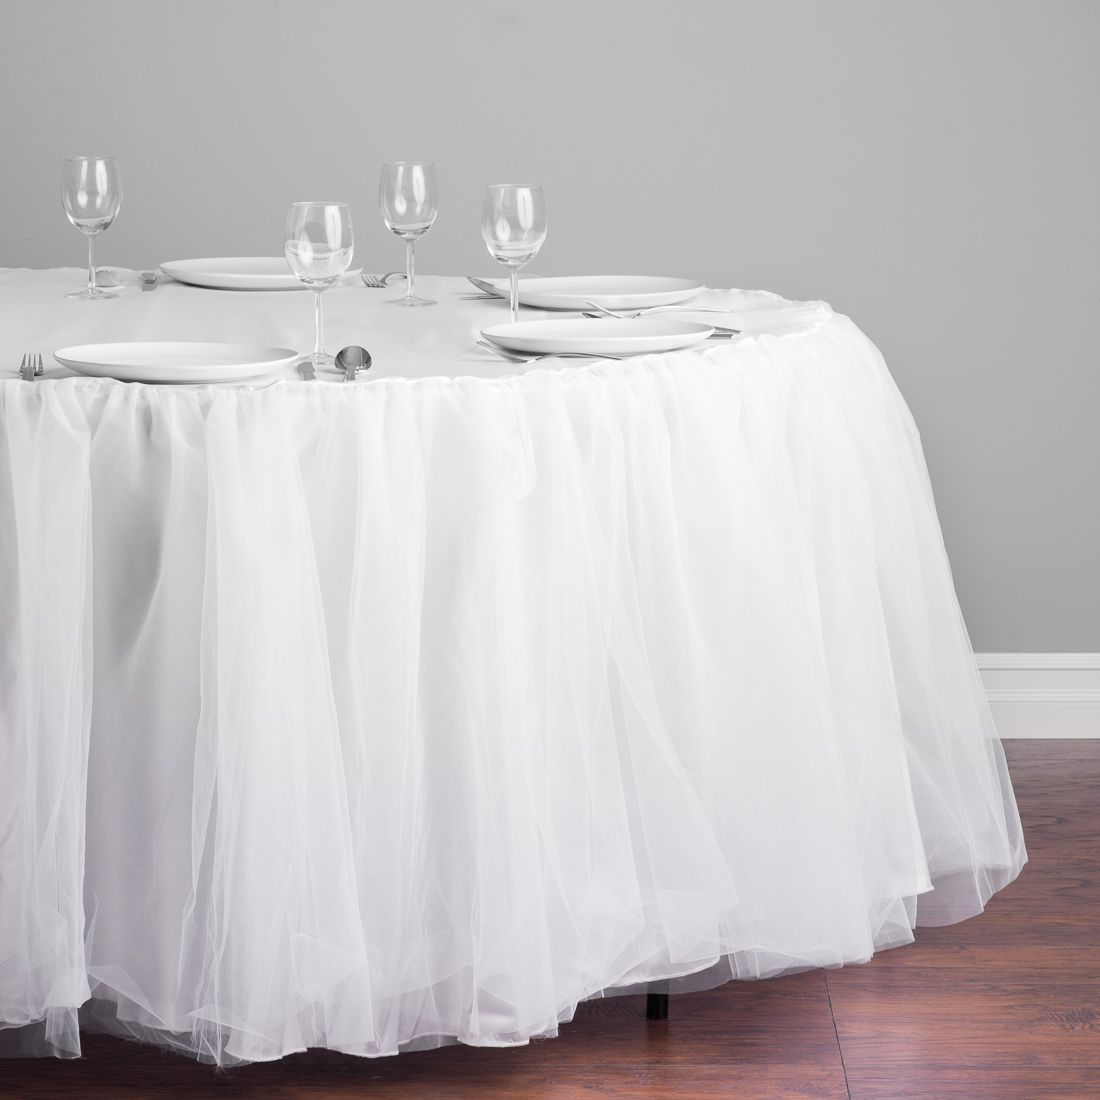 120 In Round Tutu Tablecloth White Head Table Decor Table Cloth Table Skirt